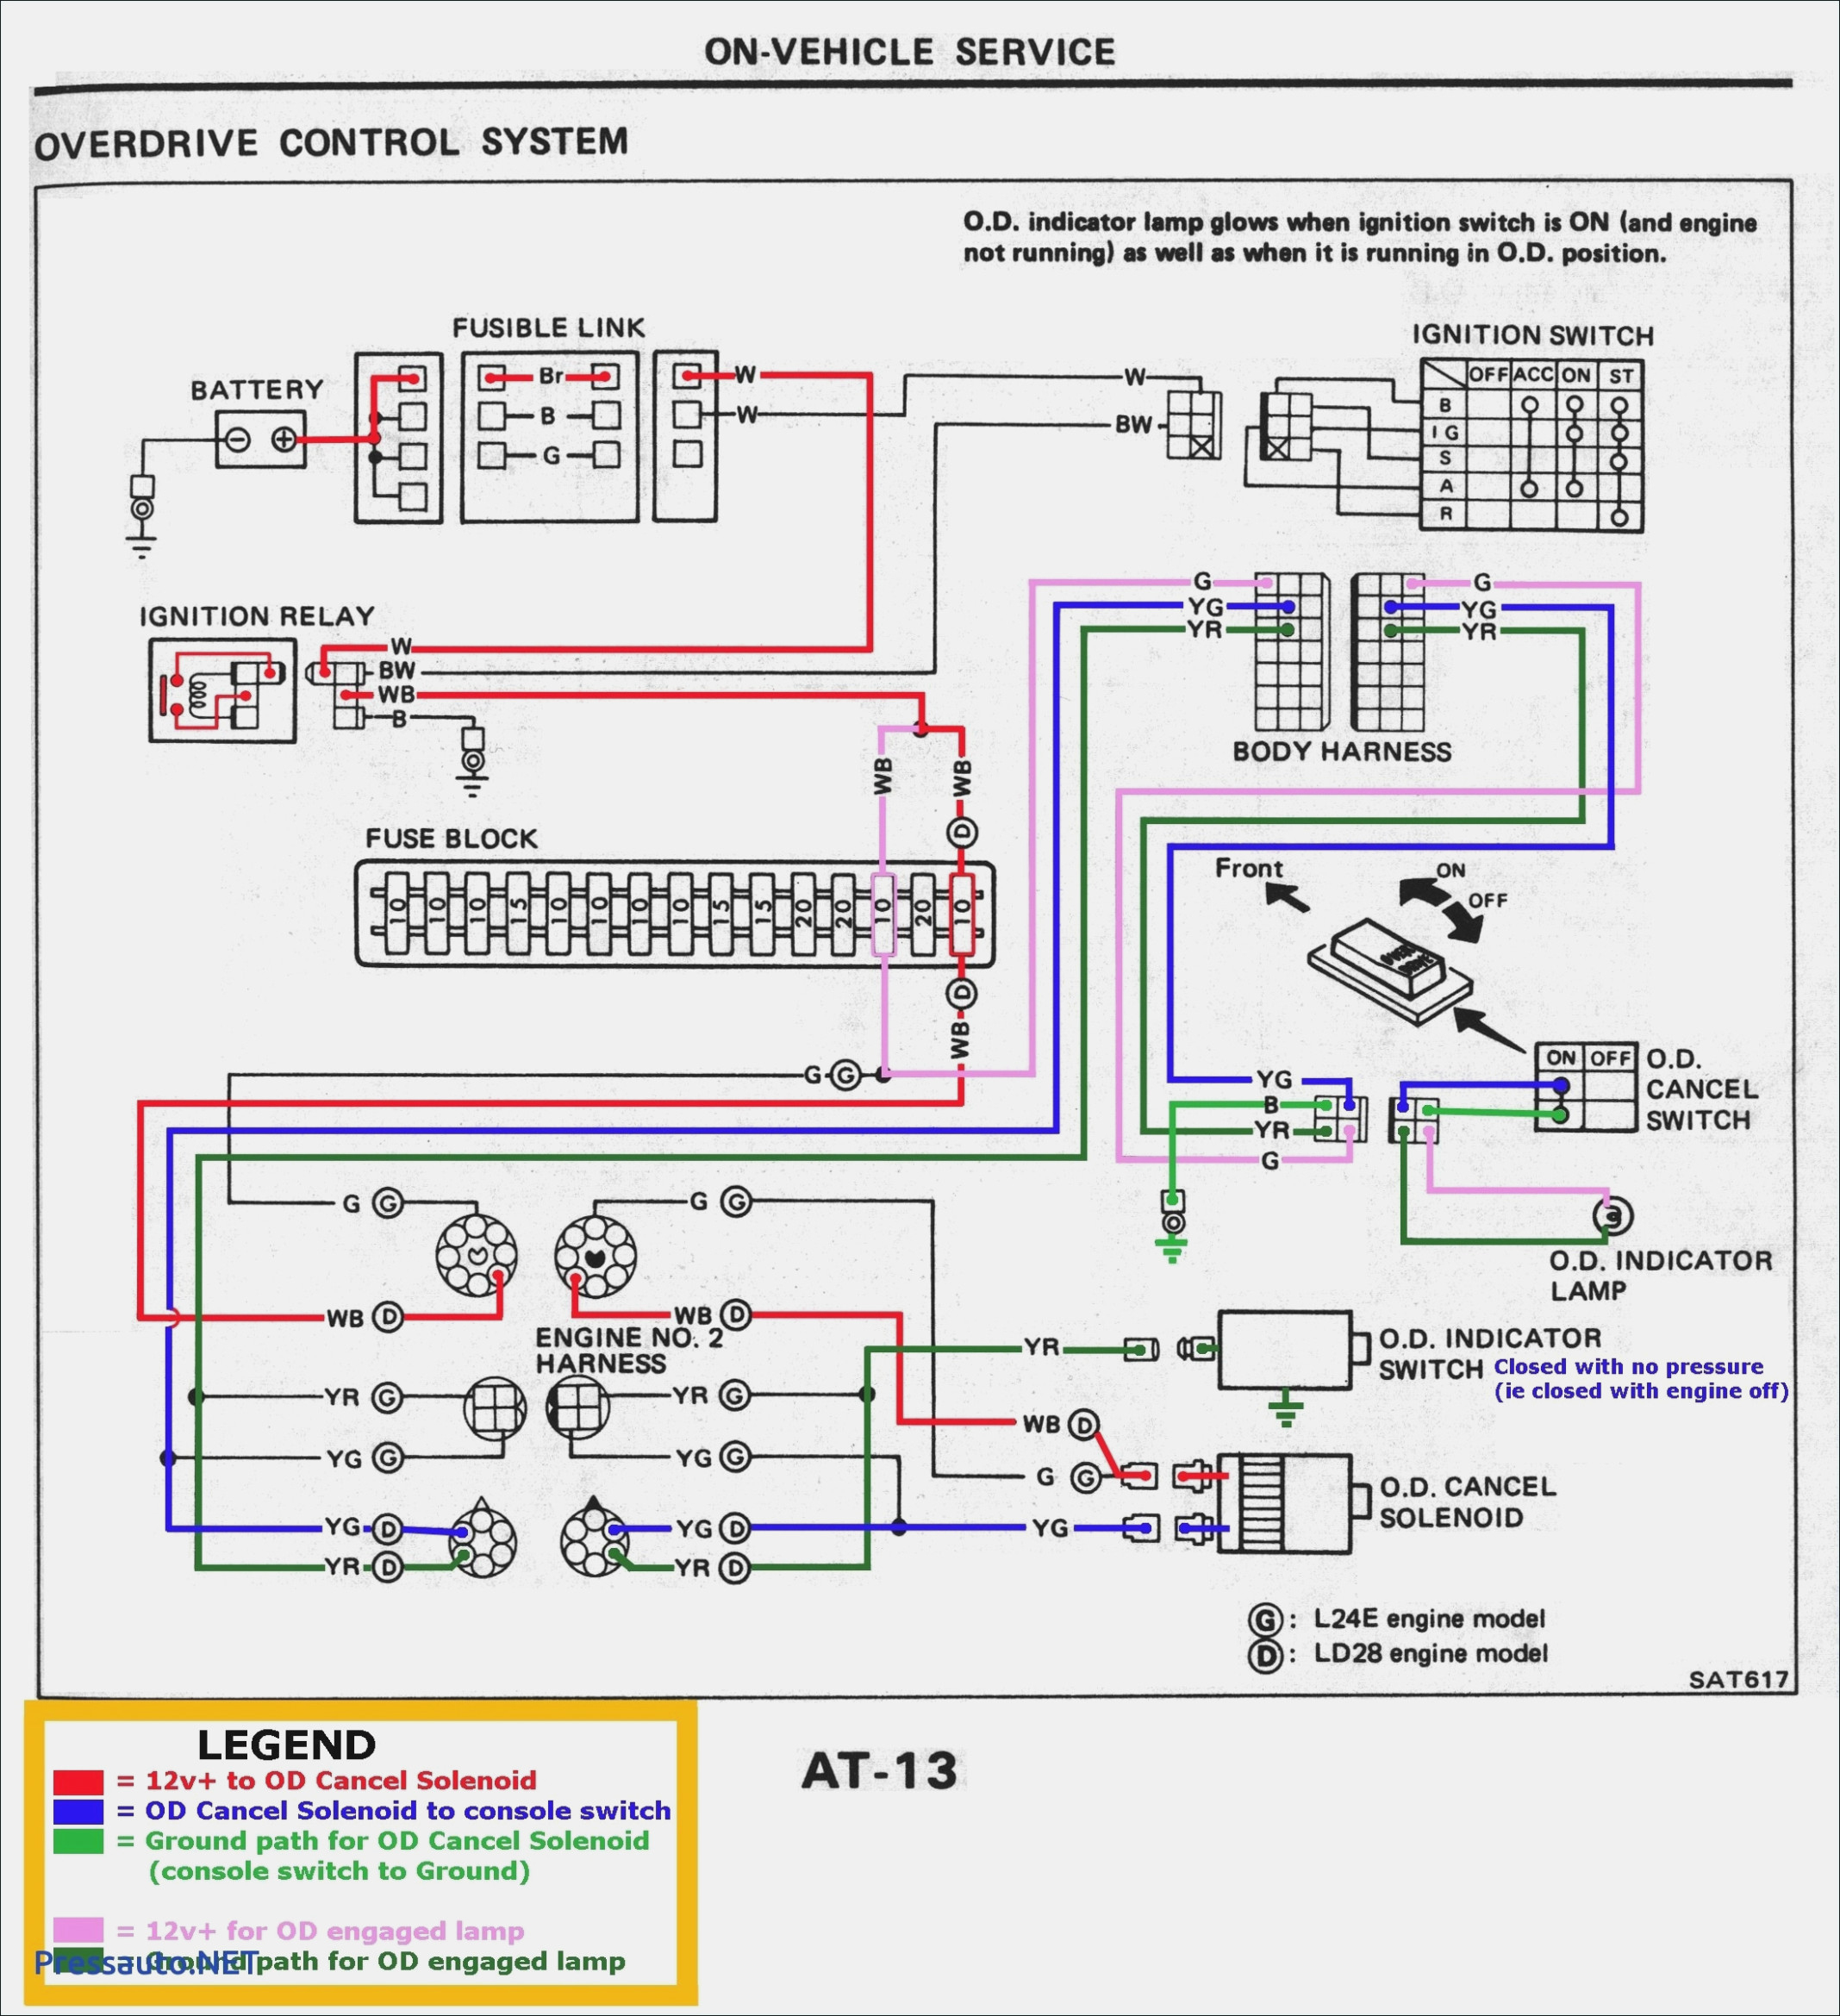 Off Road Led Light Wiring Diagram | Wiring Library - Cree Led Light Bar Wiring Diagram Pdf